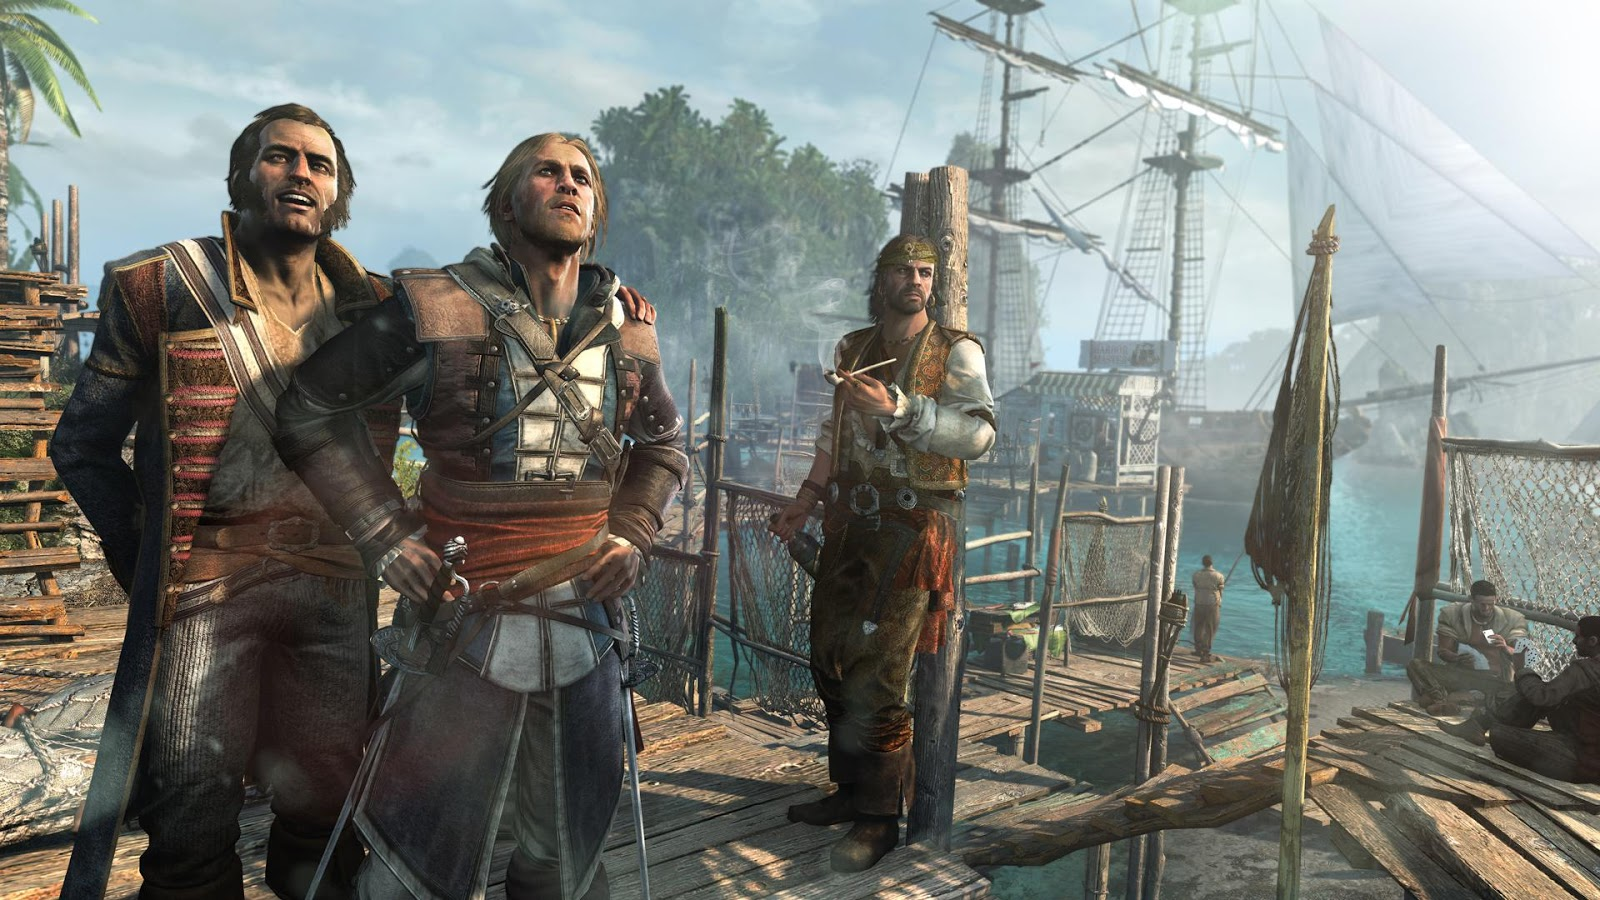 assassin creed 4 download full game free